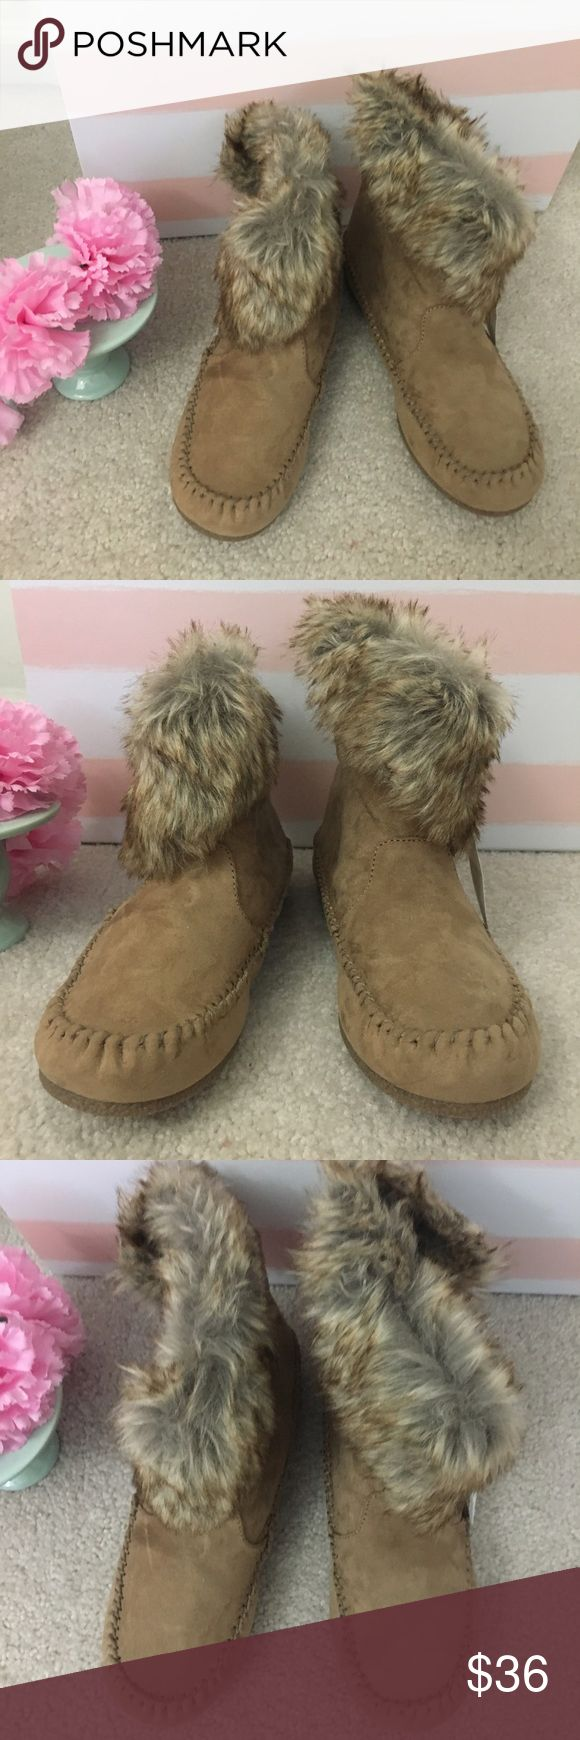 single lesbian women in moccasin Free two-day shipping for hundreds of thousands of items on orders of $35+ or free same-day store pick-up, plus free and easy returns save 5% every day with your target redcard.